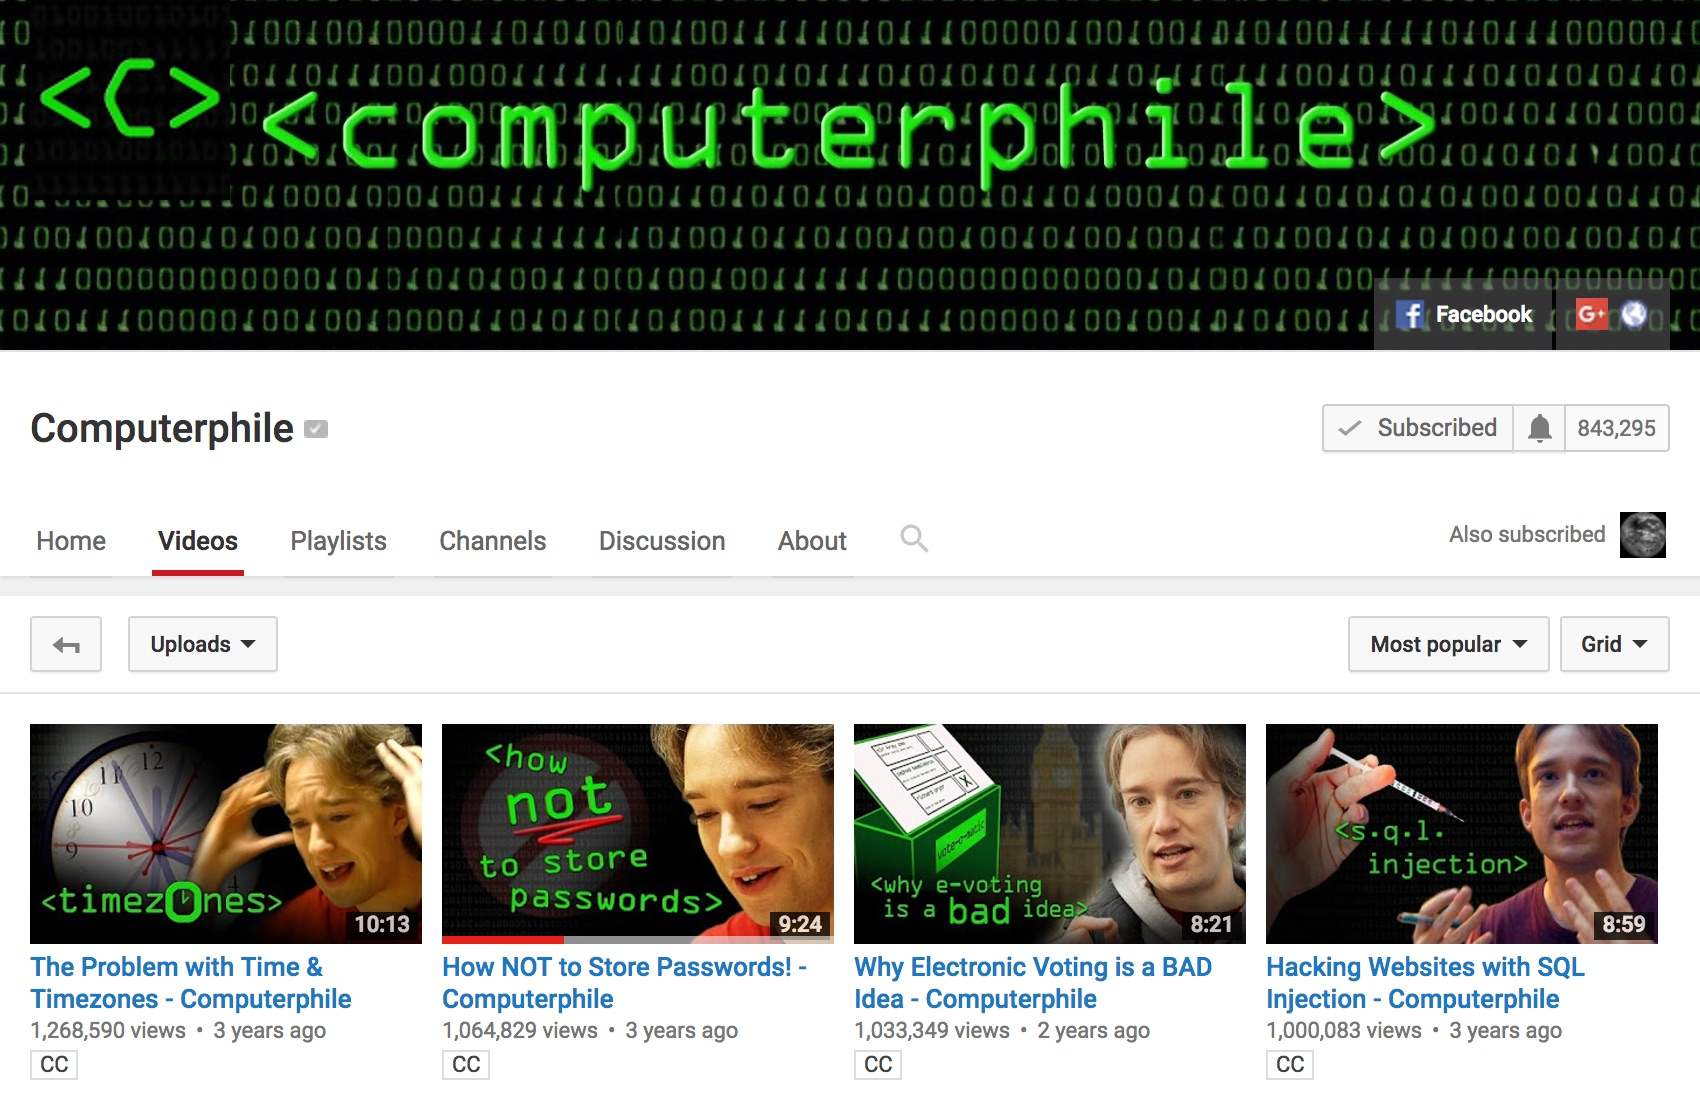 screenshot of the Computerphile YouTube channel home page